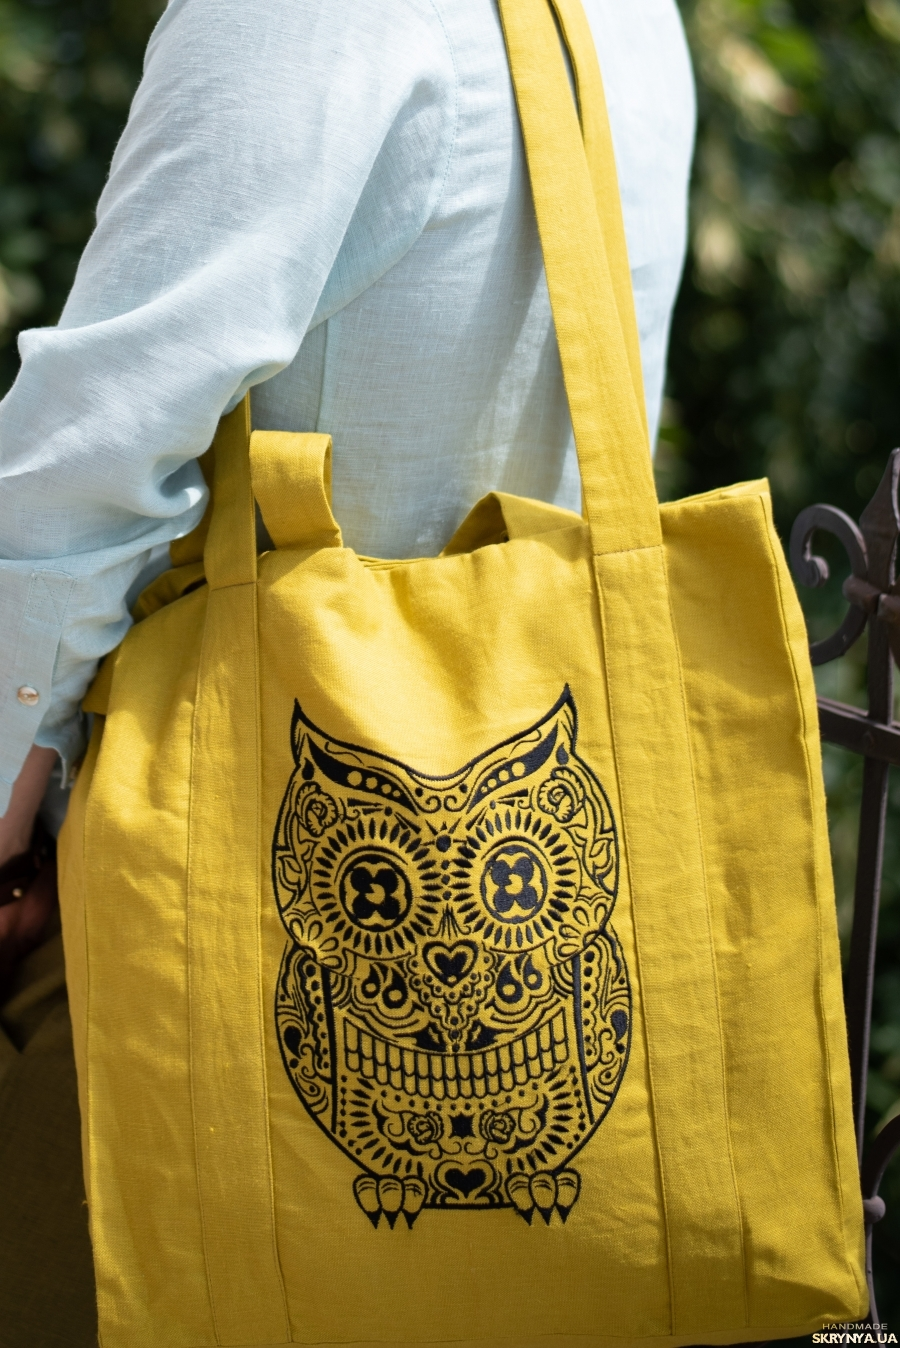 pictured here Mustard linen Tote bag with skull OWL Calavera Buho